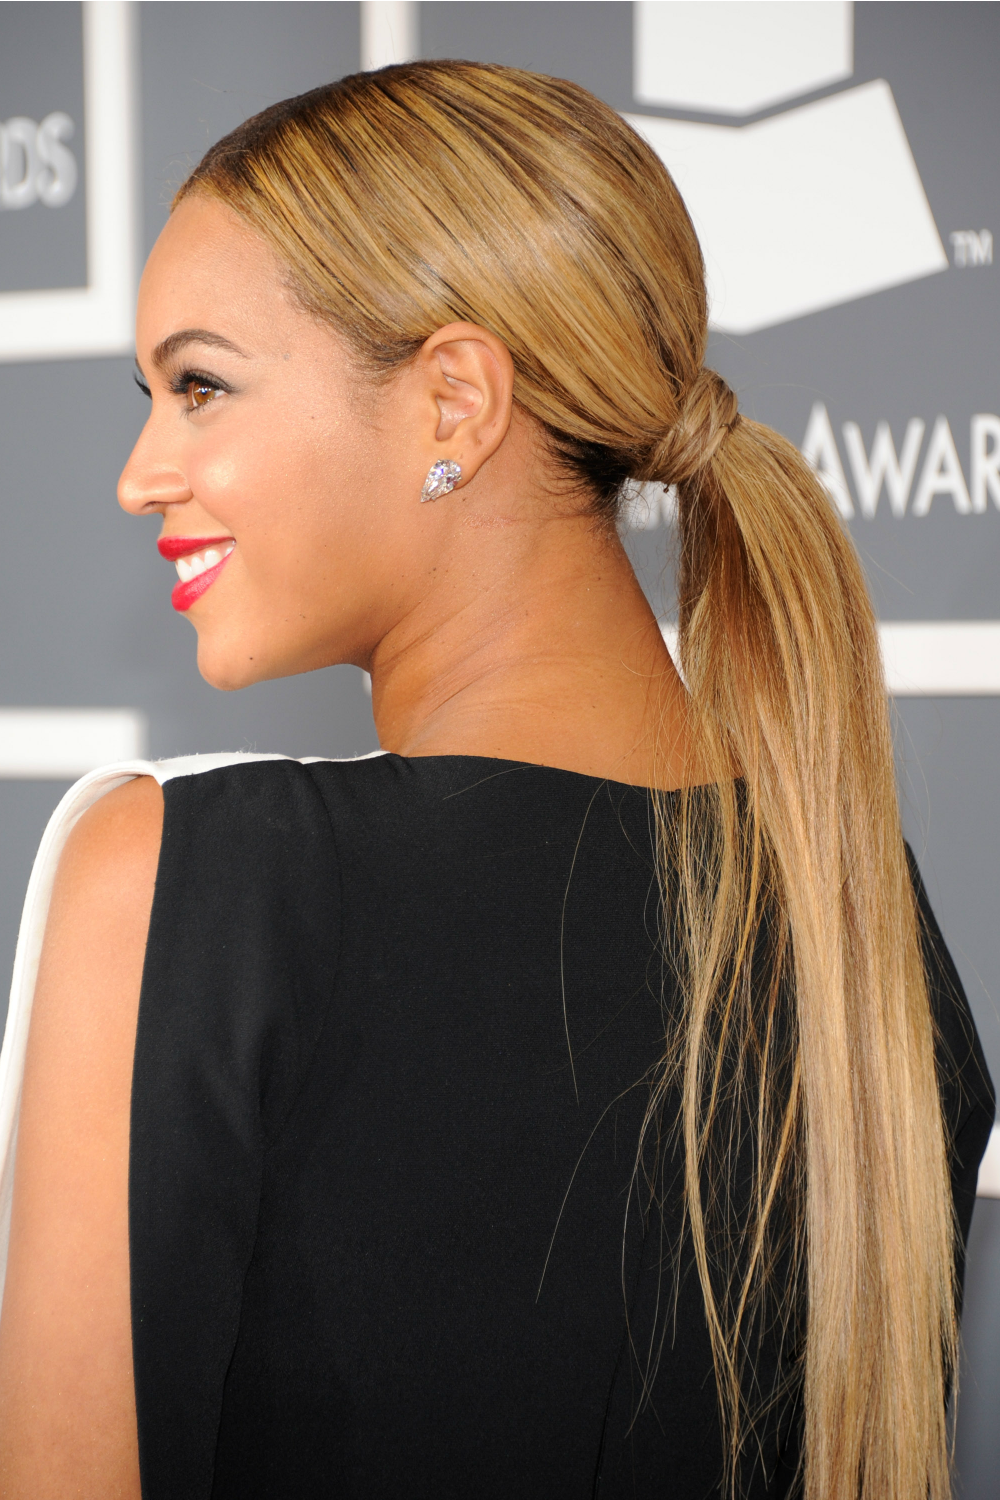 Pleasant 20 Ponytail Hairstyles Incredibly Easy Ponytails You Should Try Now Short Hairstyles For Black Women Fulllsitofus